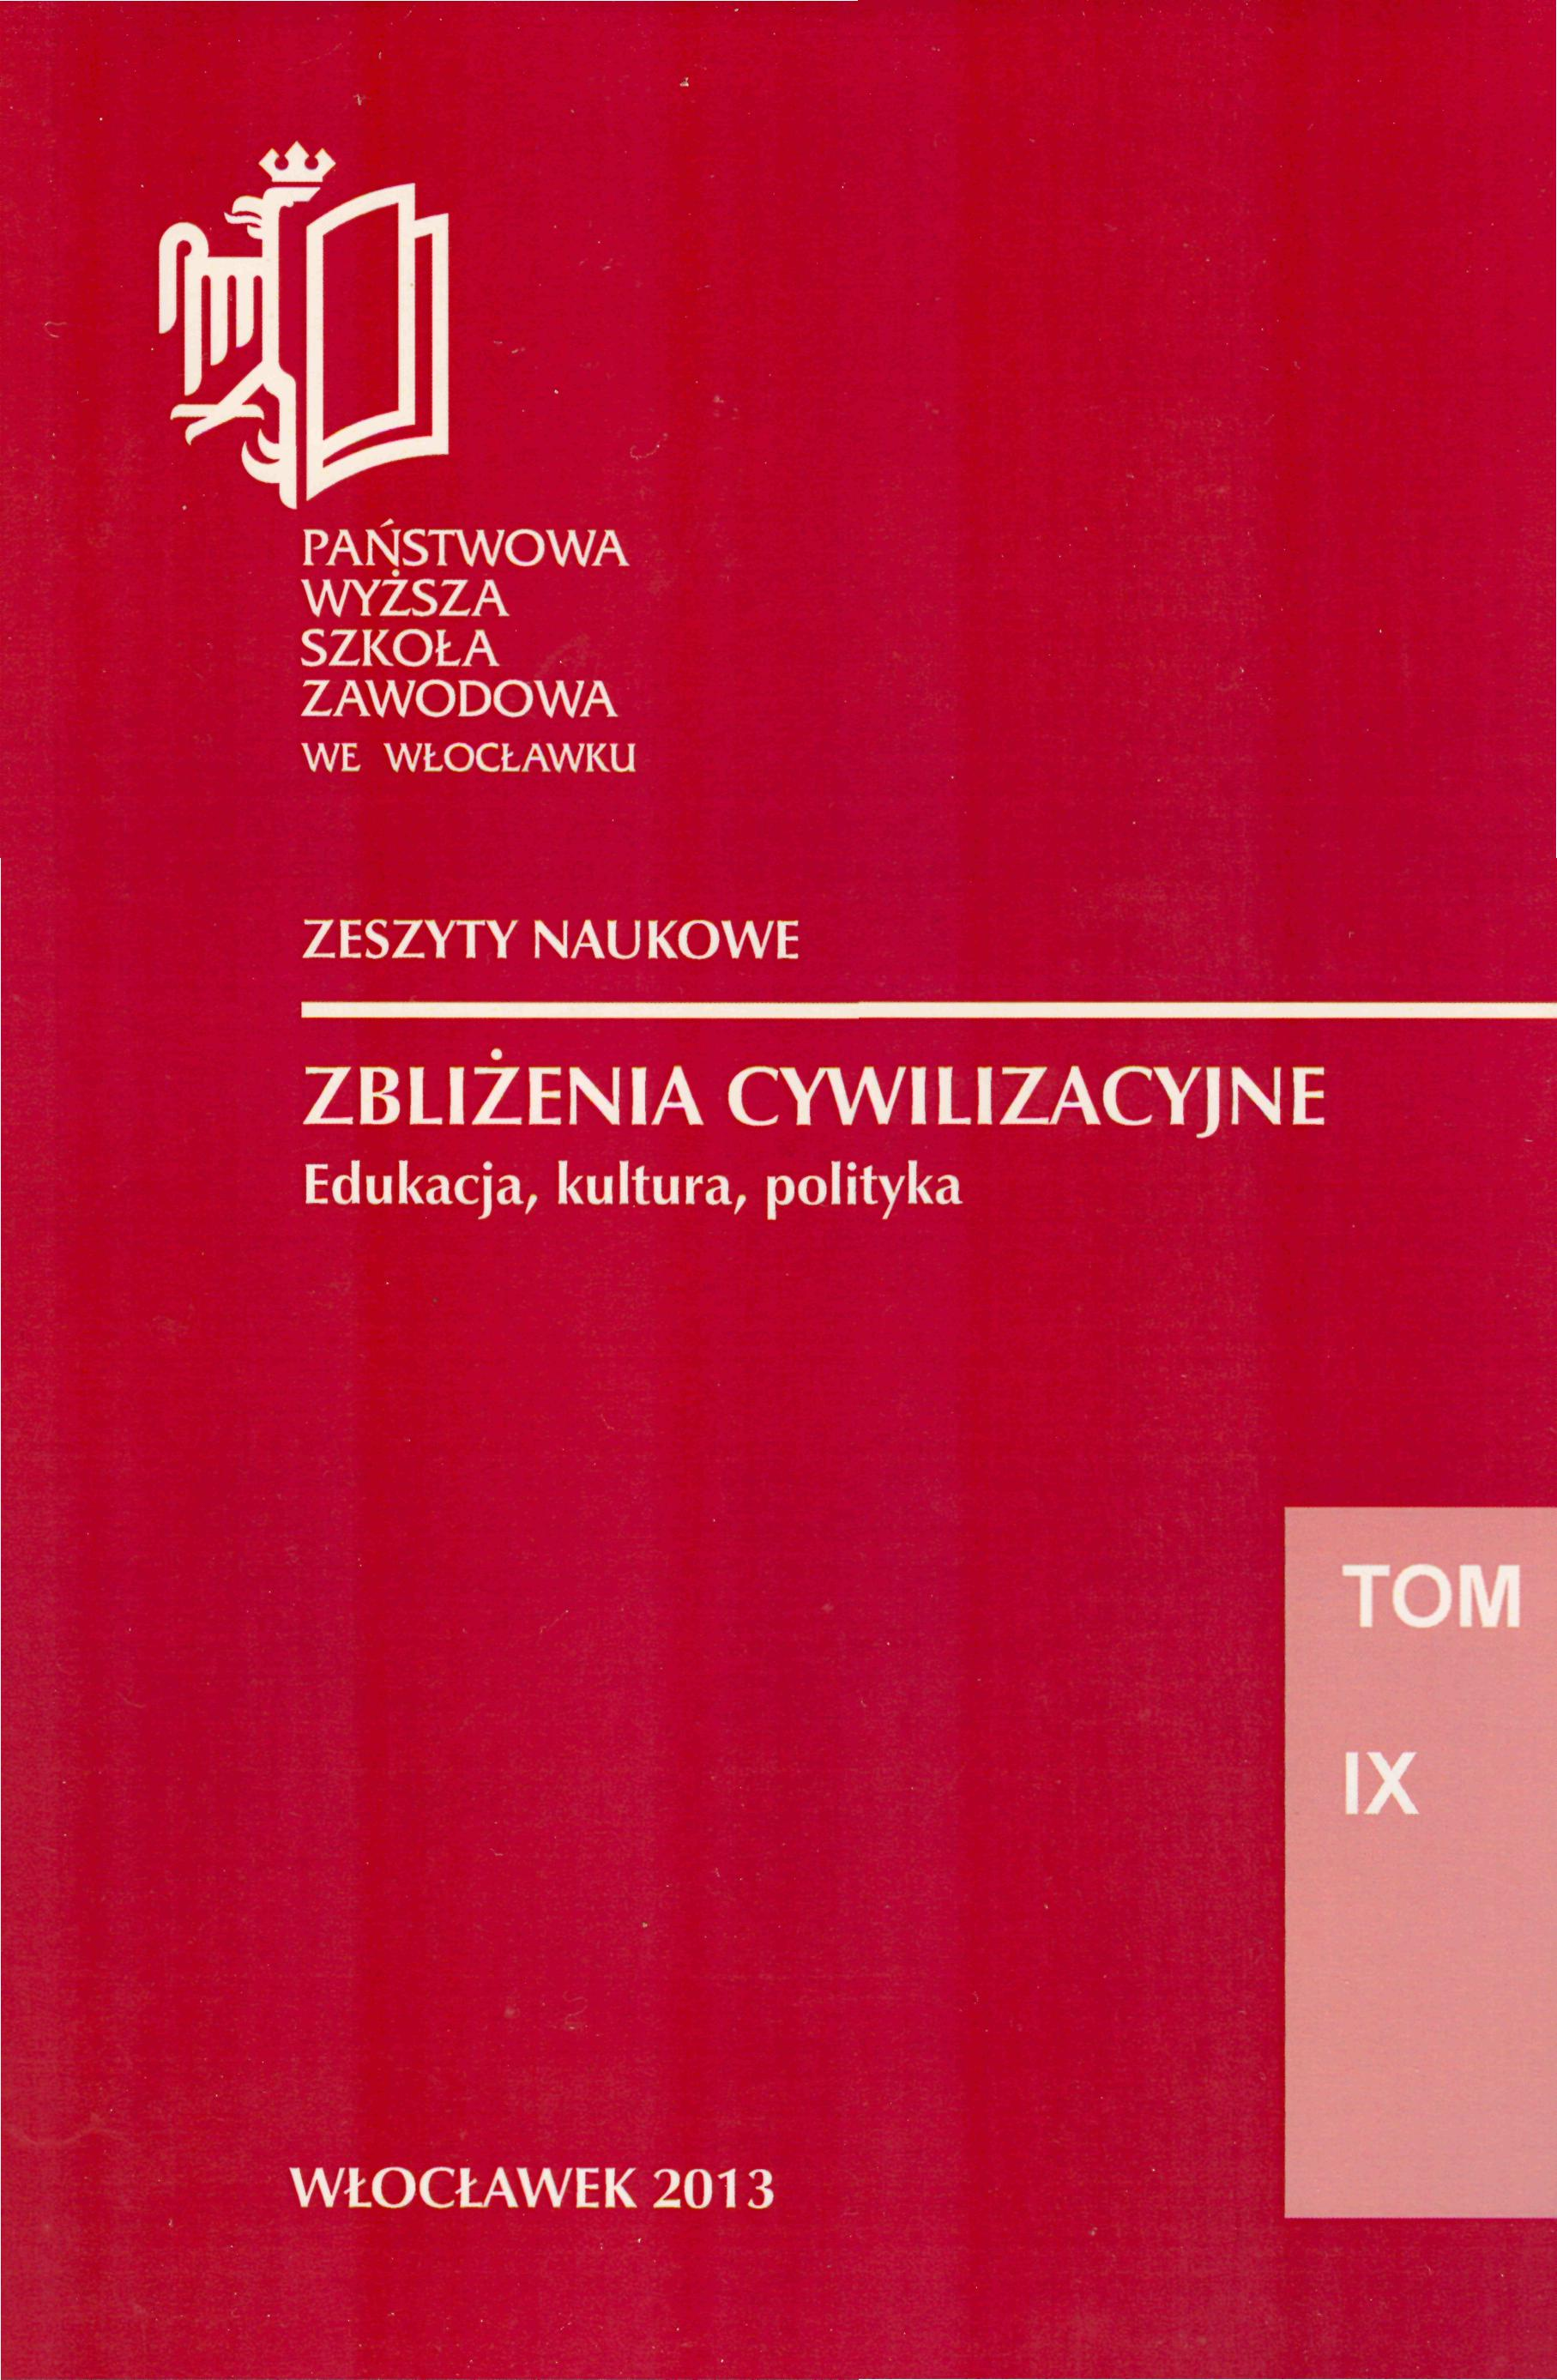 images/books/201401230950280.Okładka ZC IX.jpg?category_id=8&product_id=96